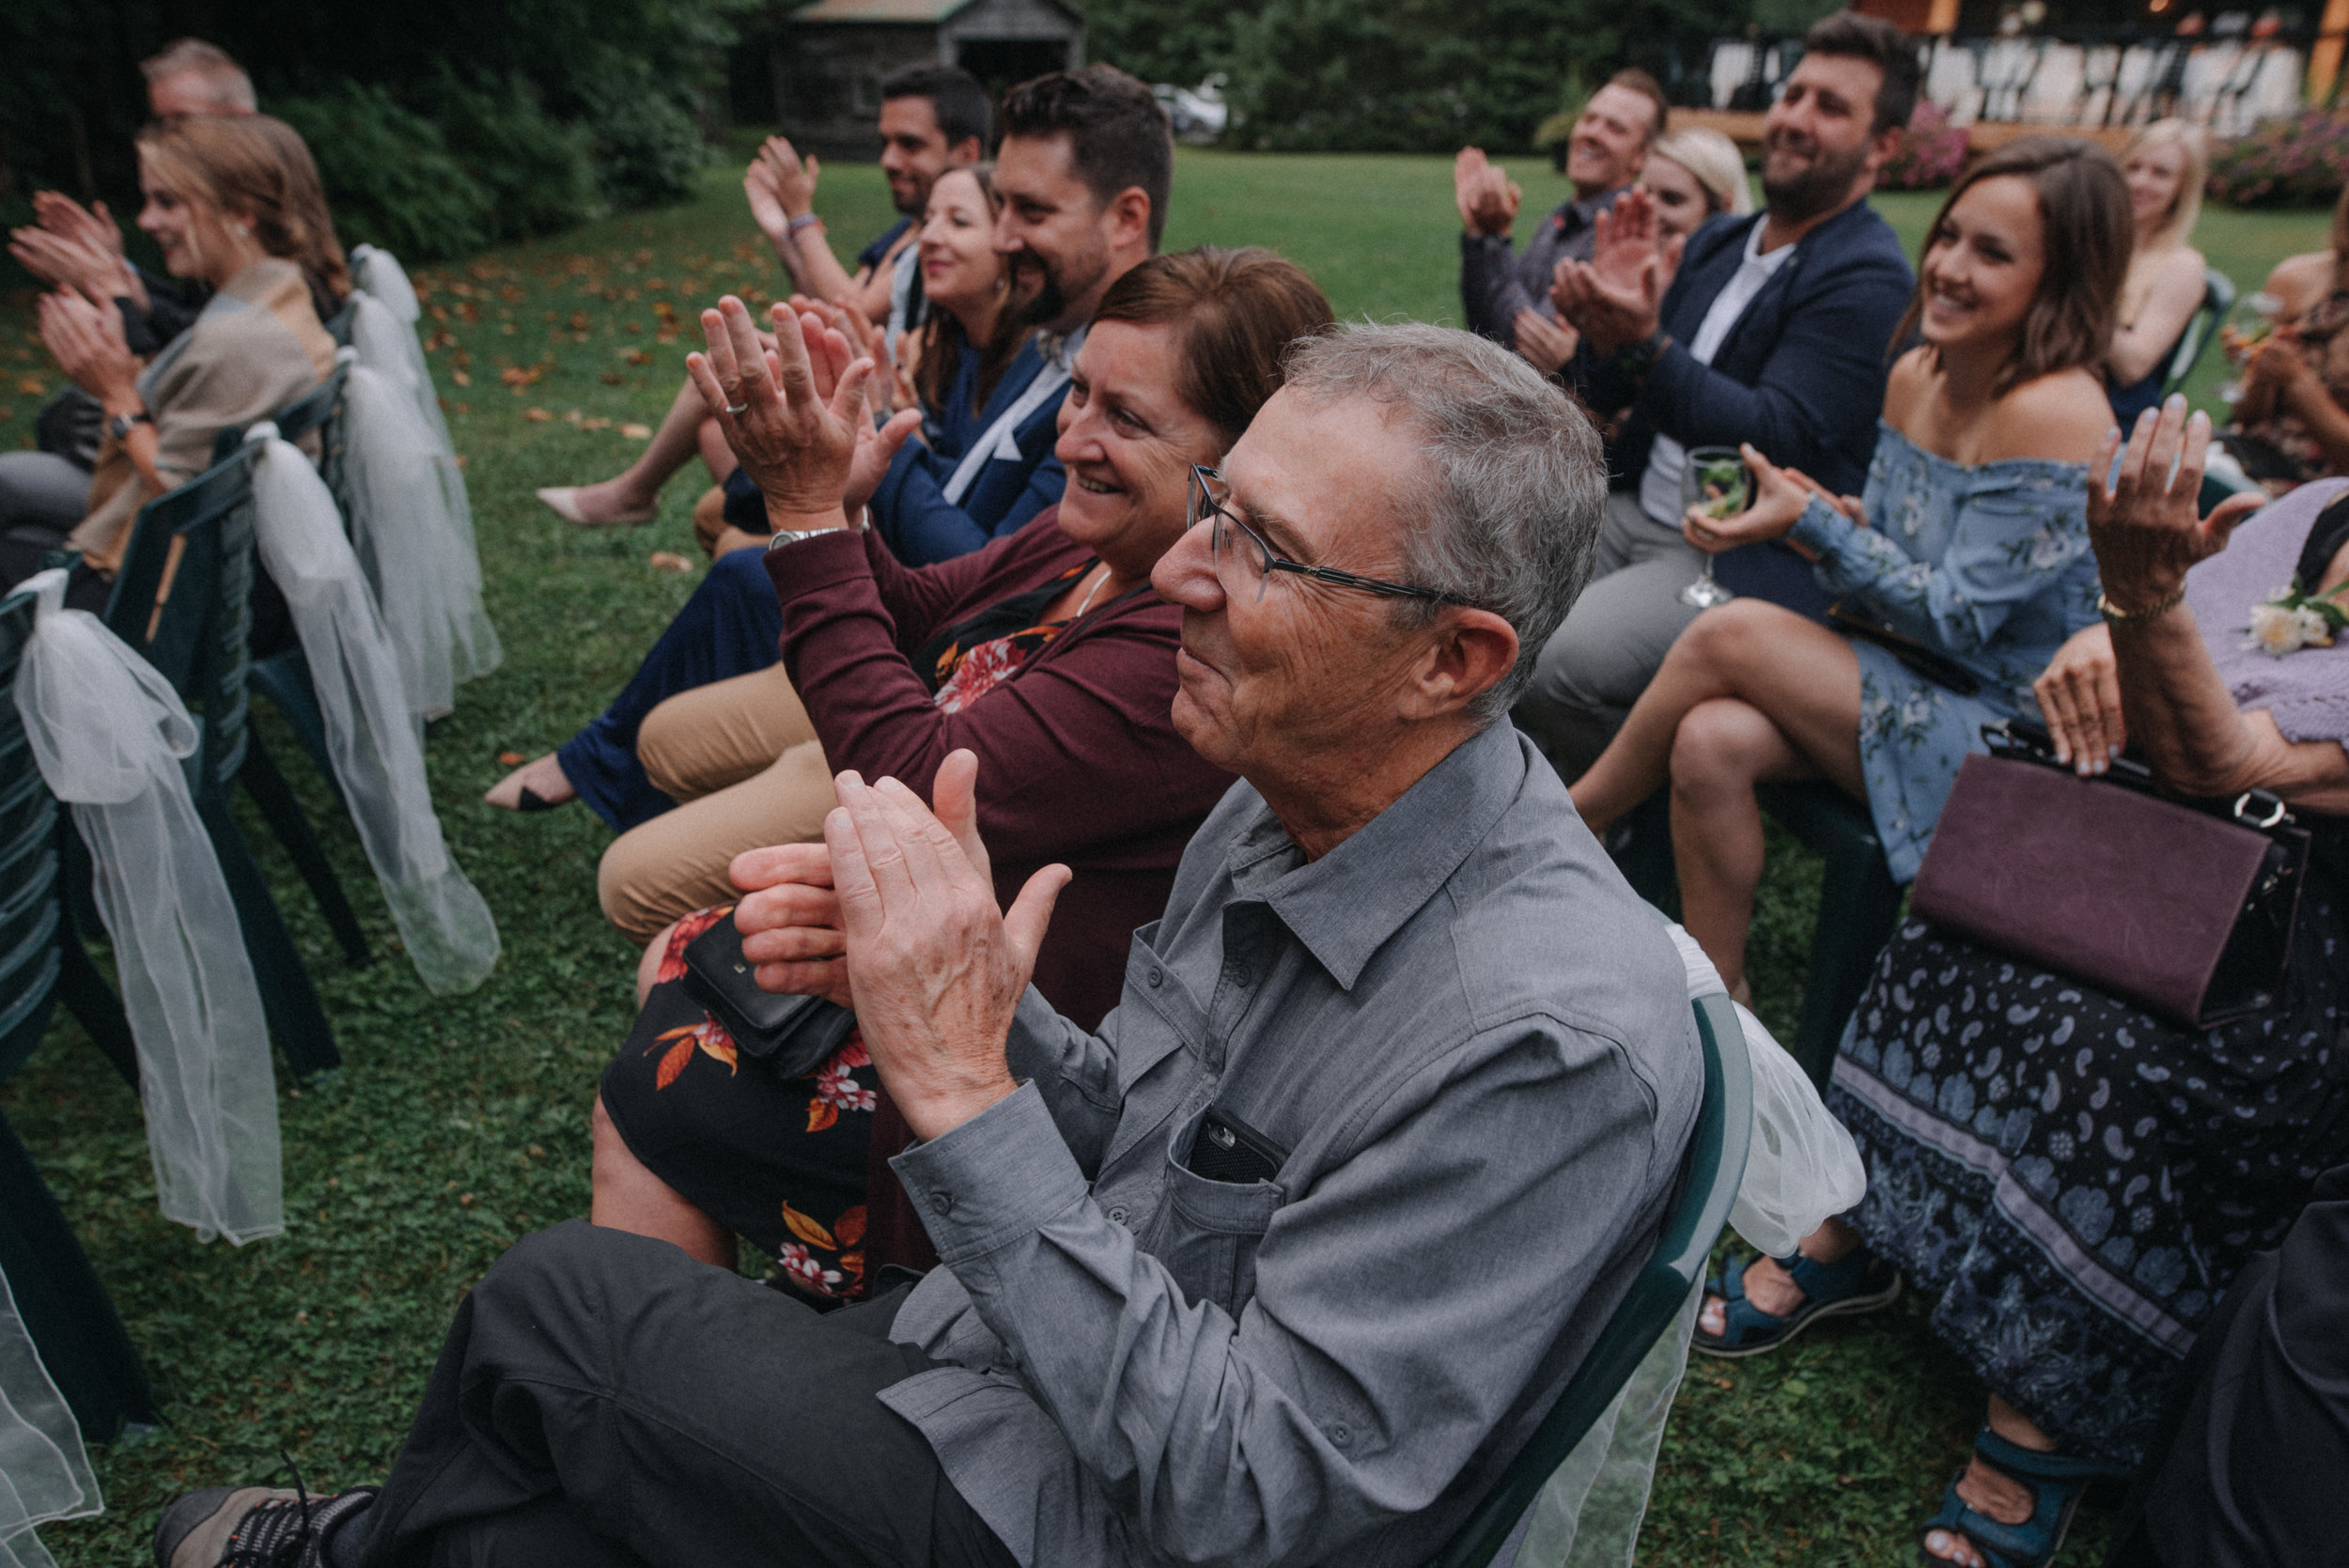 photographe_gatineau_mariage_ottawa_wedding_photographer_candid_natural_lifestyle_documentary_photography_photographie_naturelle_emotions_bride_intimate_elopment (40).JPG